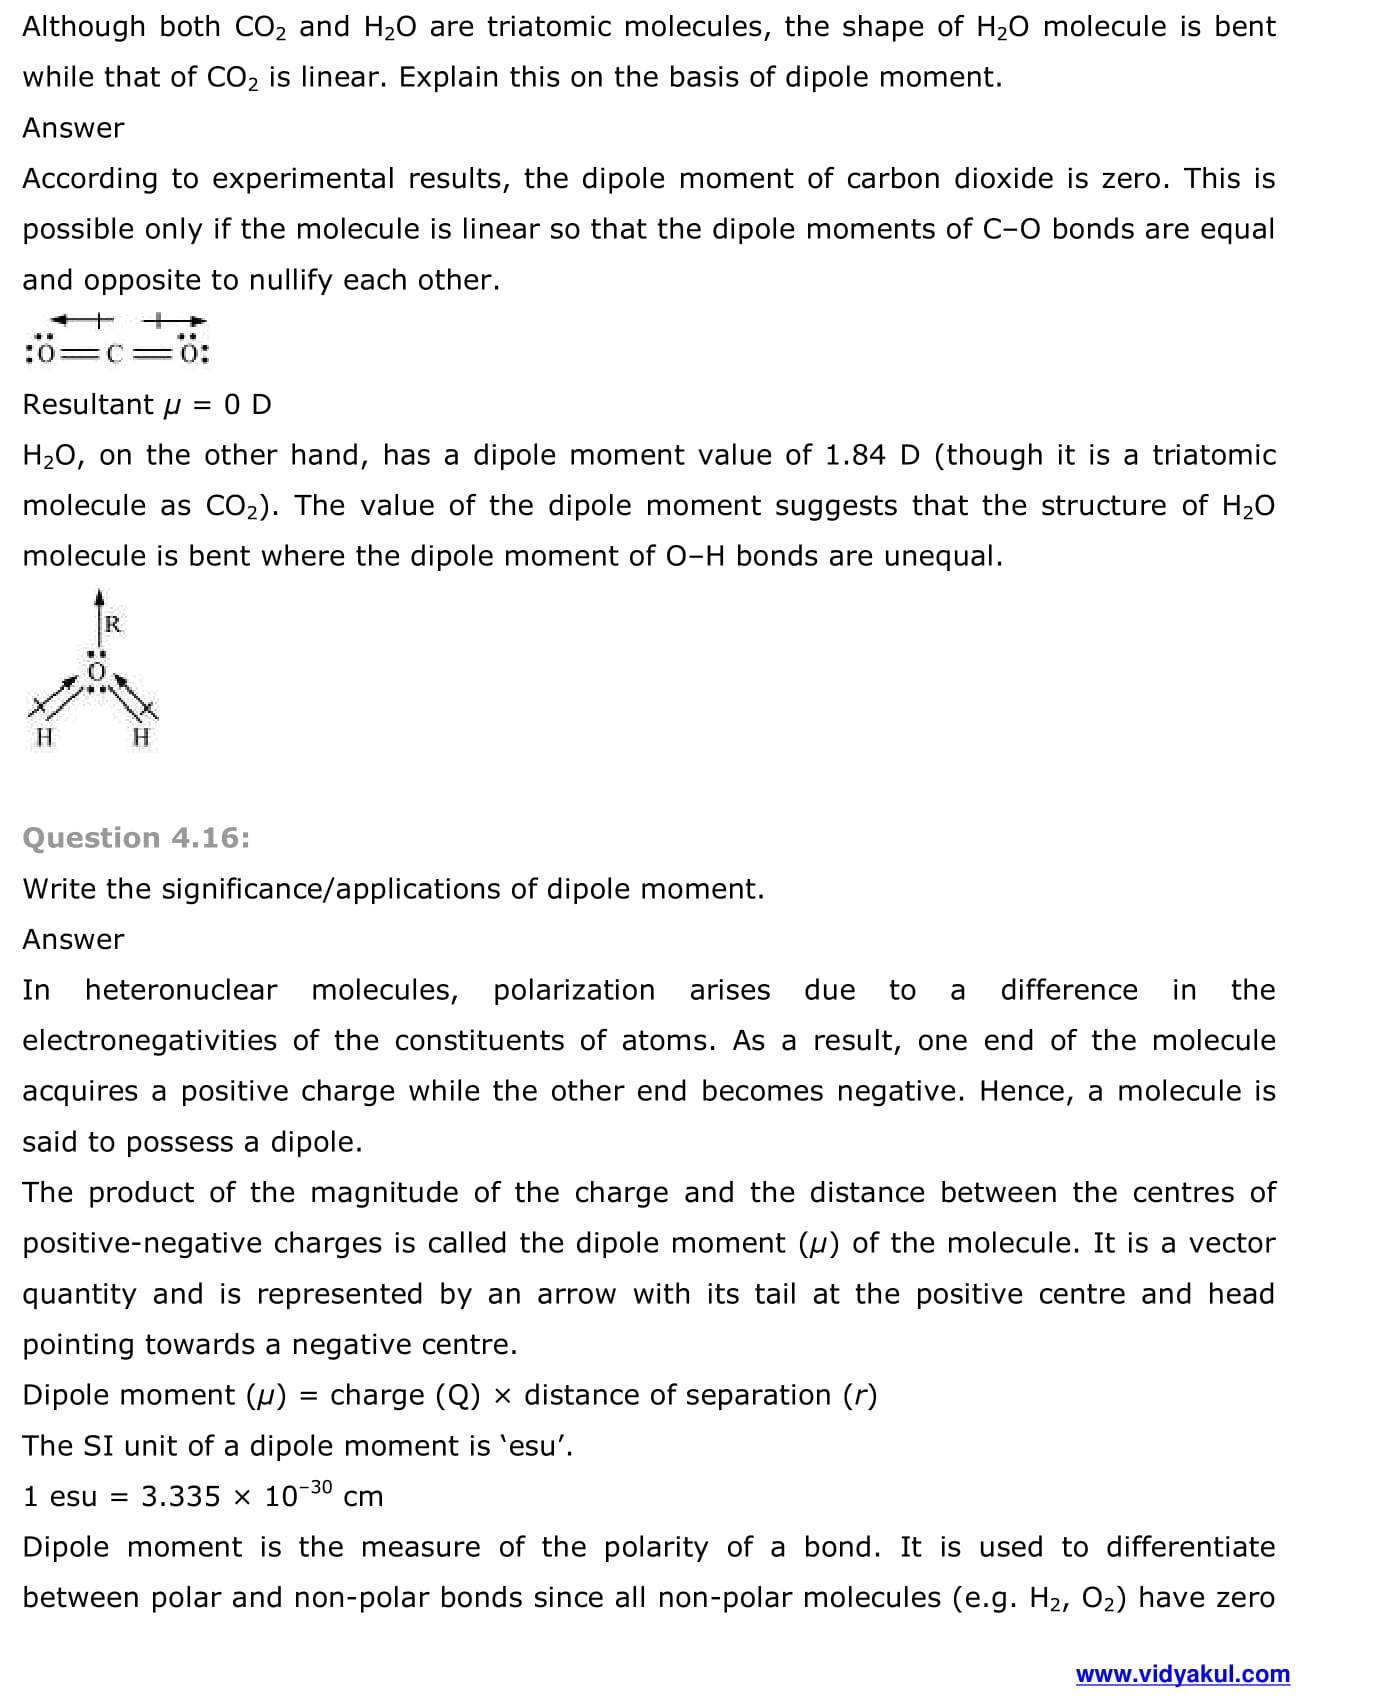 NCERT Solutions Class 11 Chemistry Chapter 4 | Vidyakul